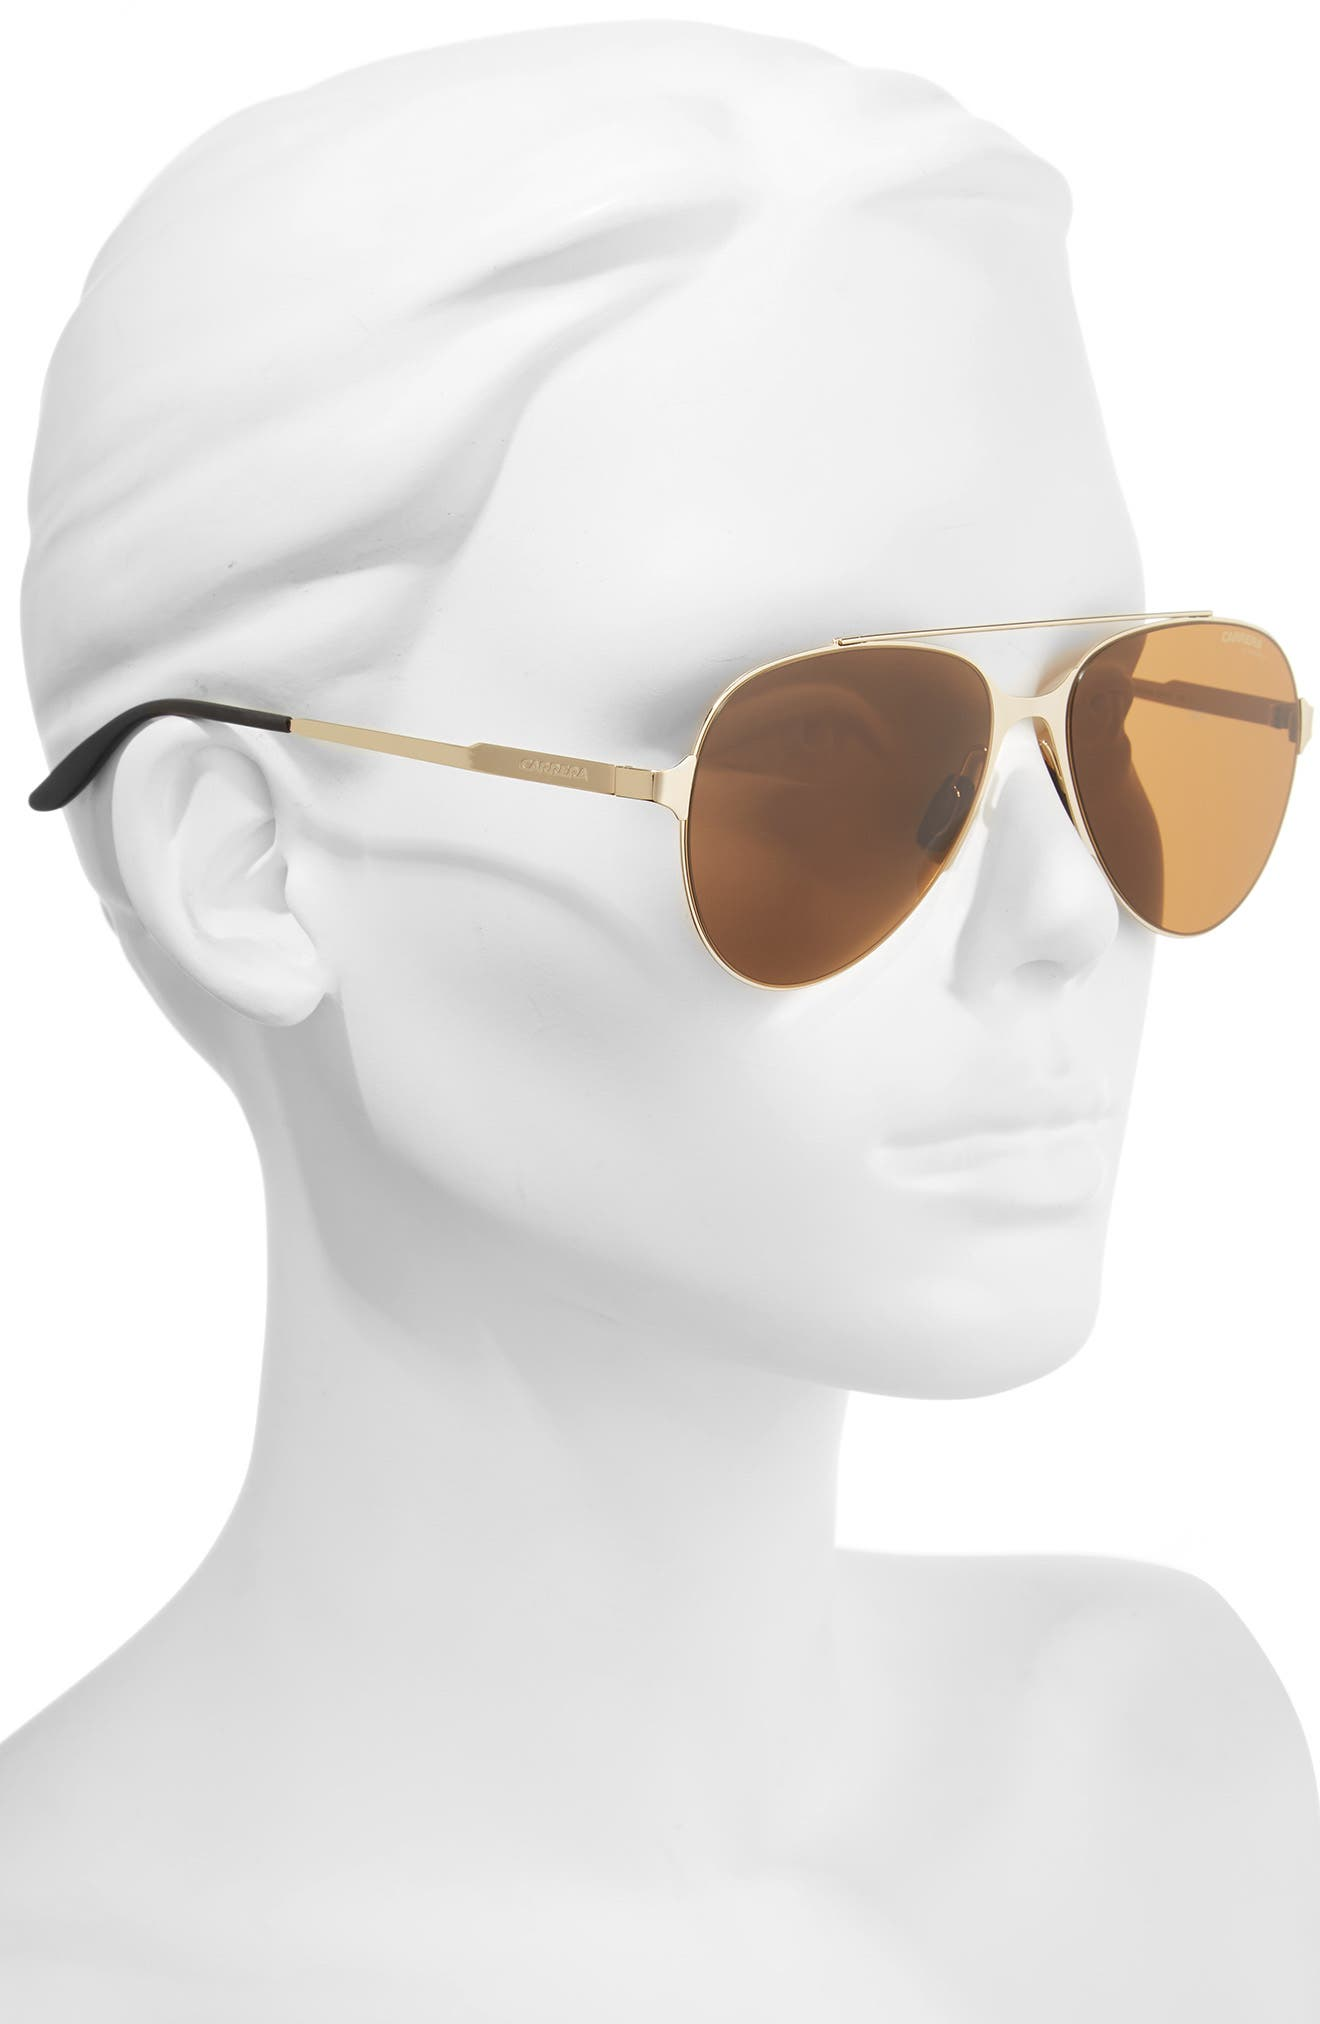 55mm Aviator Sunglasses,                             Alternate thumbnail 2, color,                             714